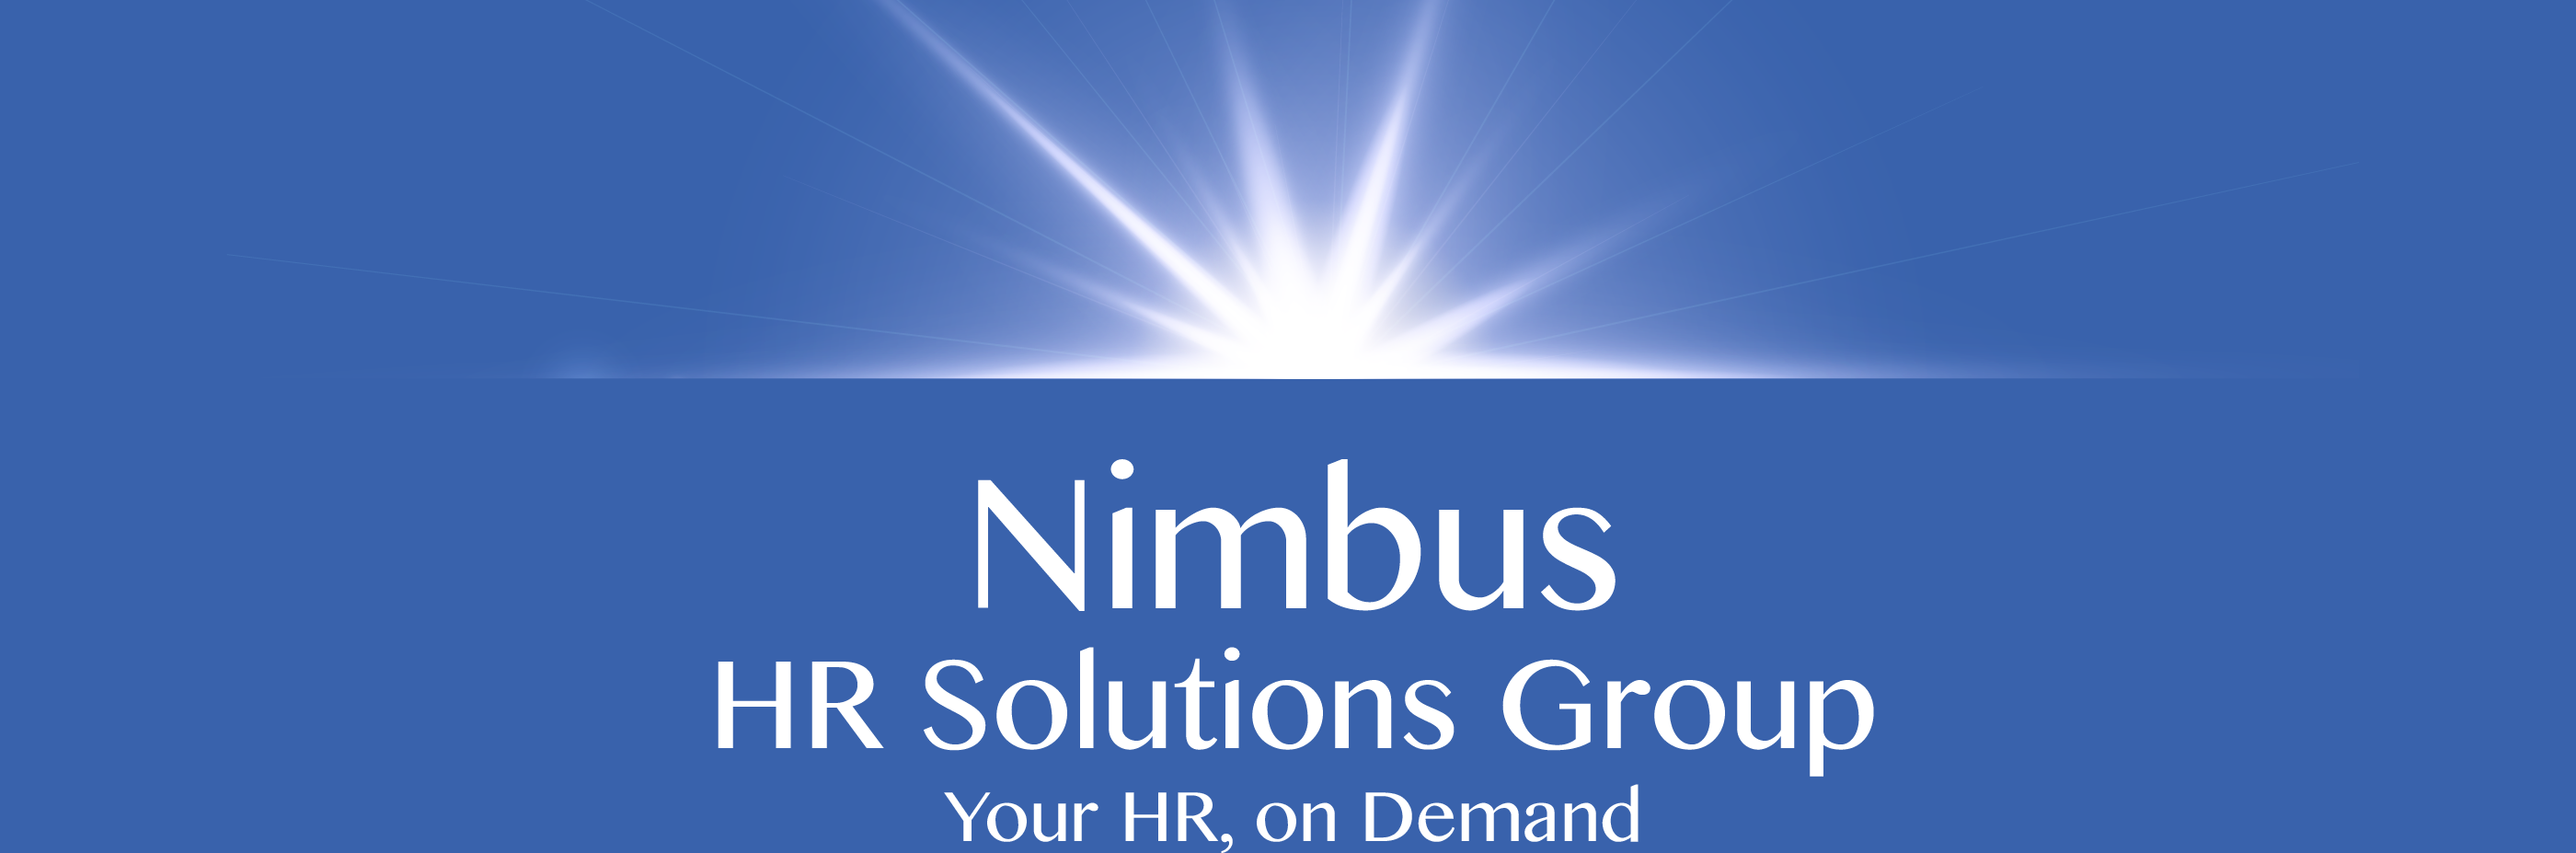 Nimbus HR Solutions Group